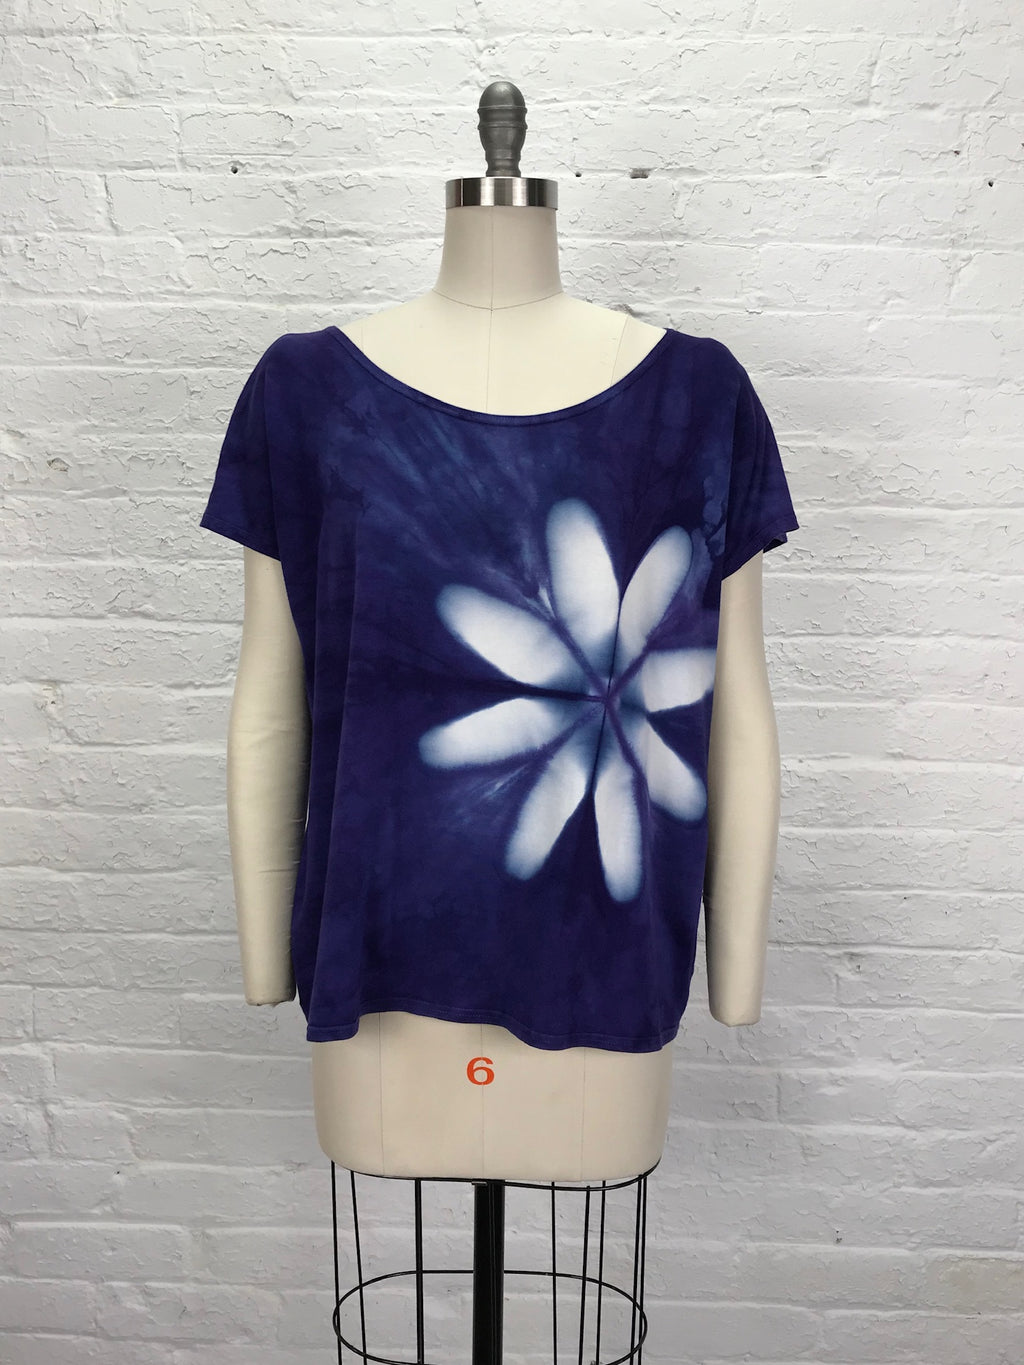 ELSIE TOP in Violet Flower Power